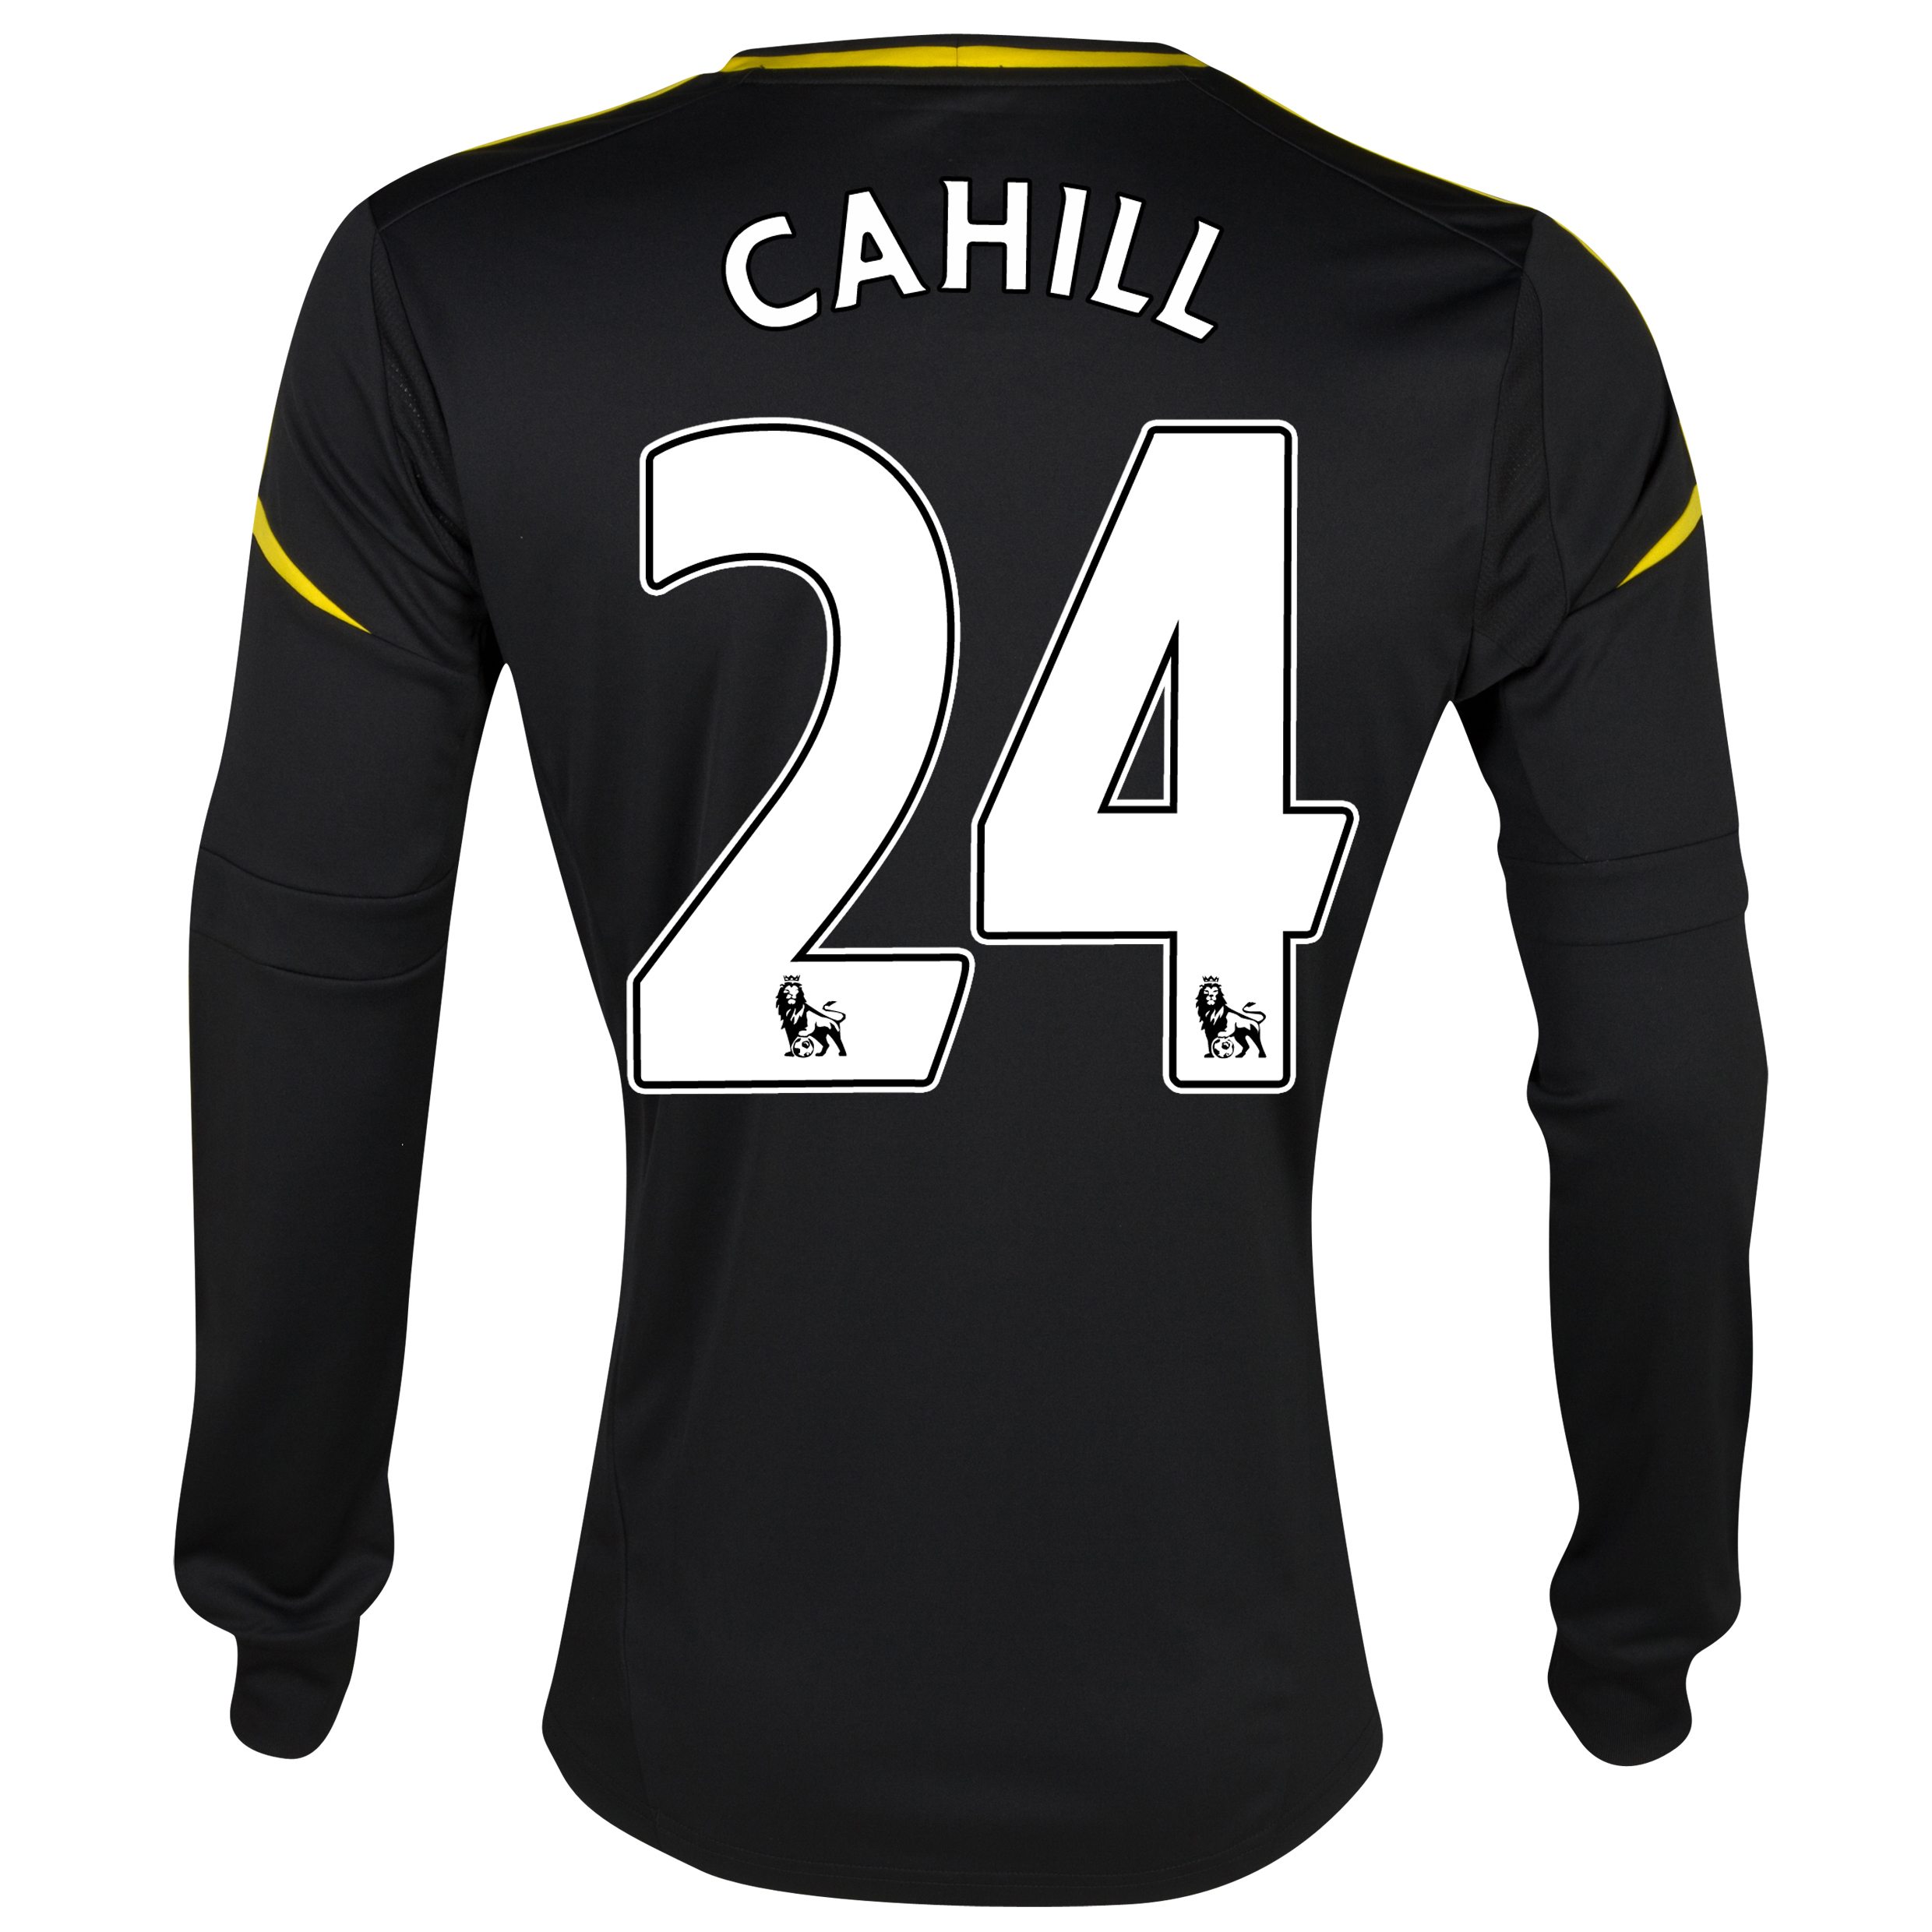 Chelsea Third Shirt 2012/13 - Long Sleeved with Cahill 24 printing